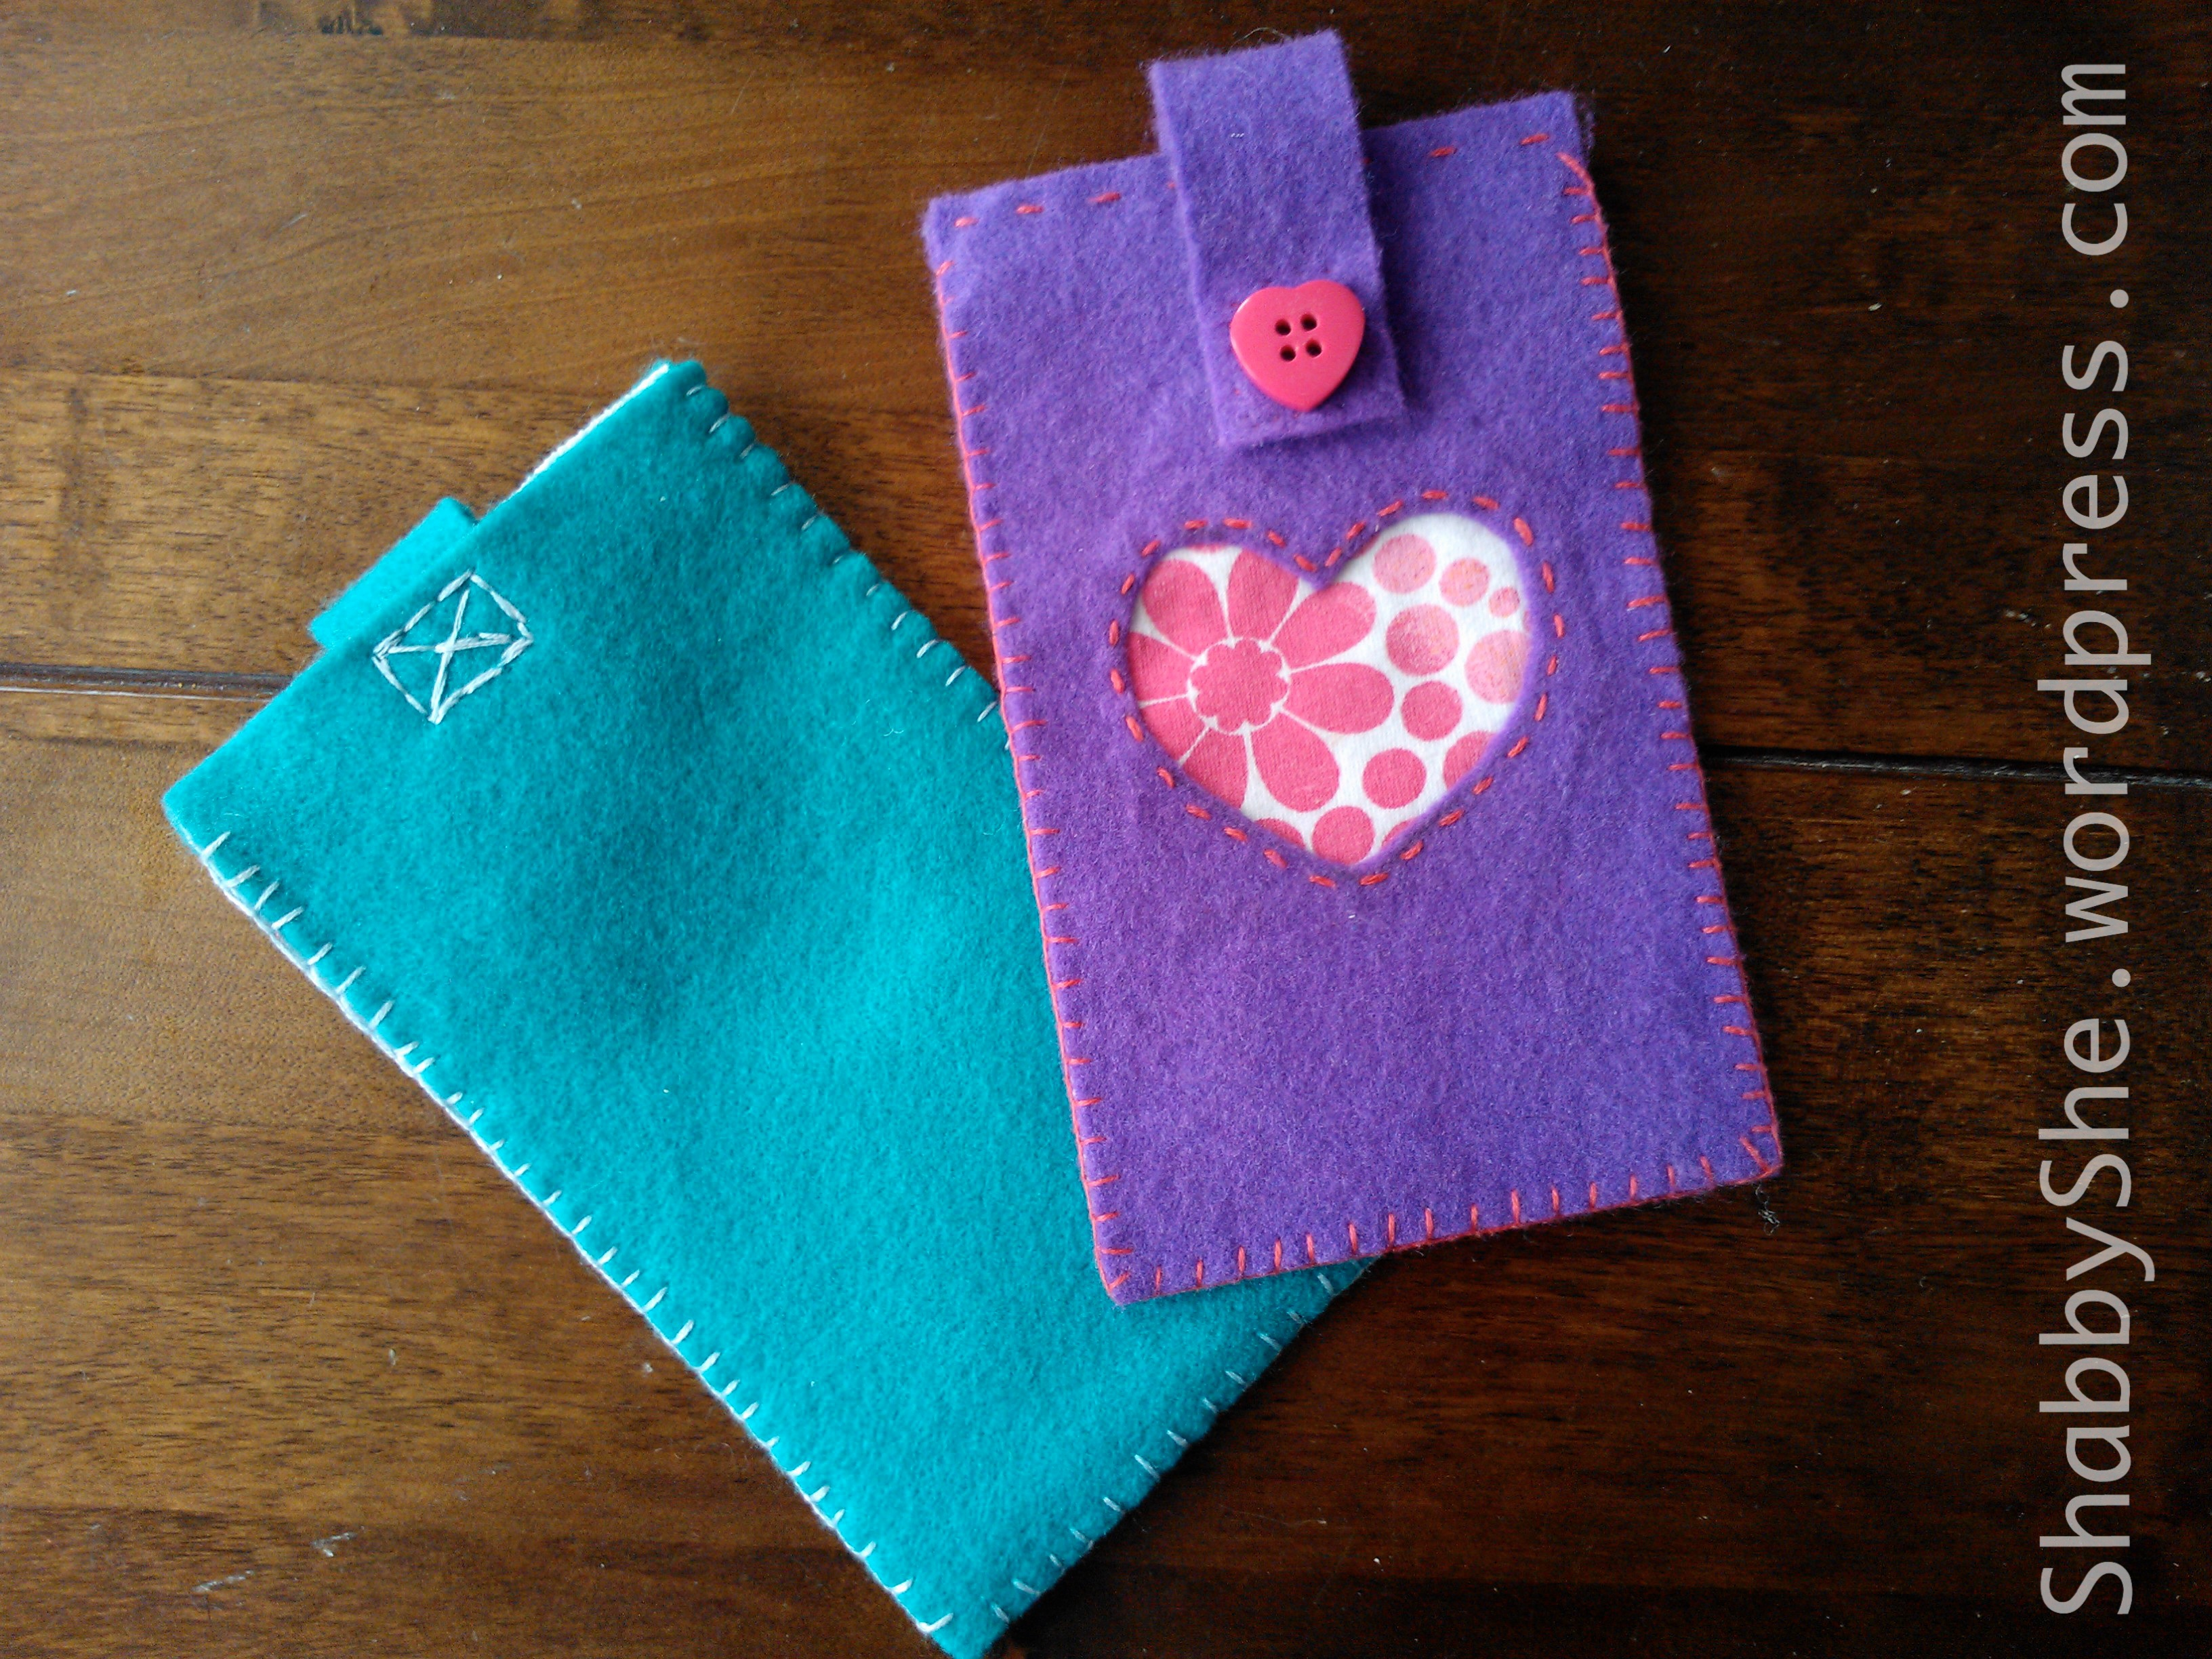 Forum on this topic: How to Make a Felt Phone Case, how-to-make-a-felt-phone-case/